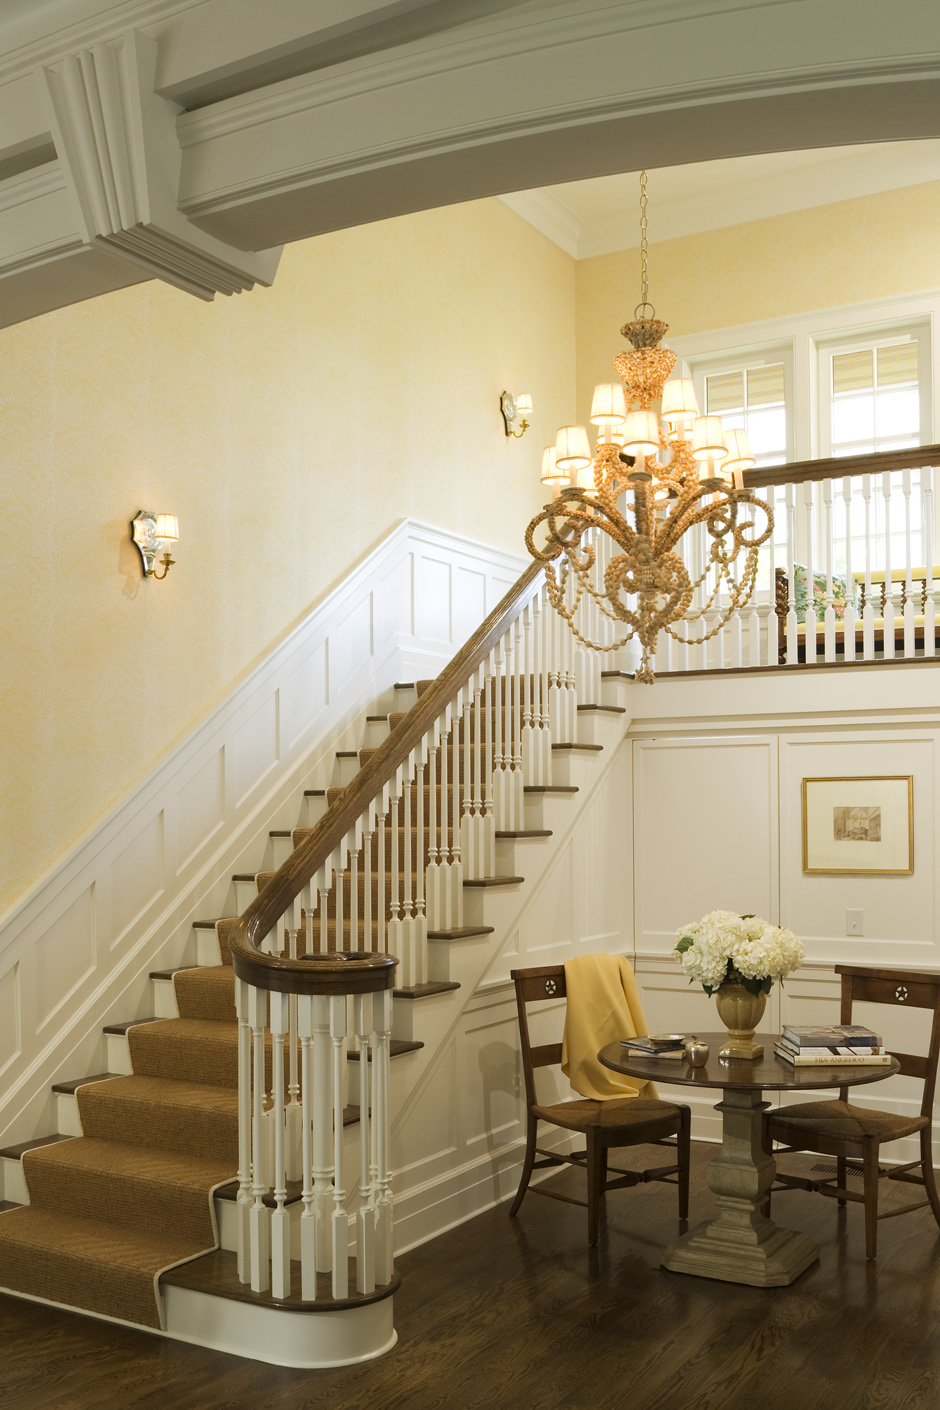 stairhall-016605